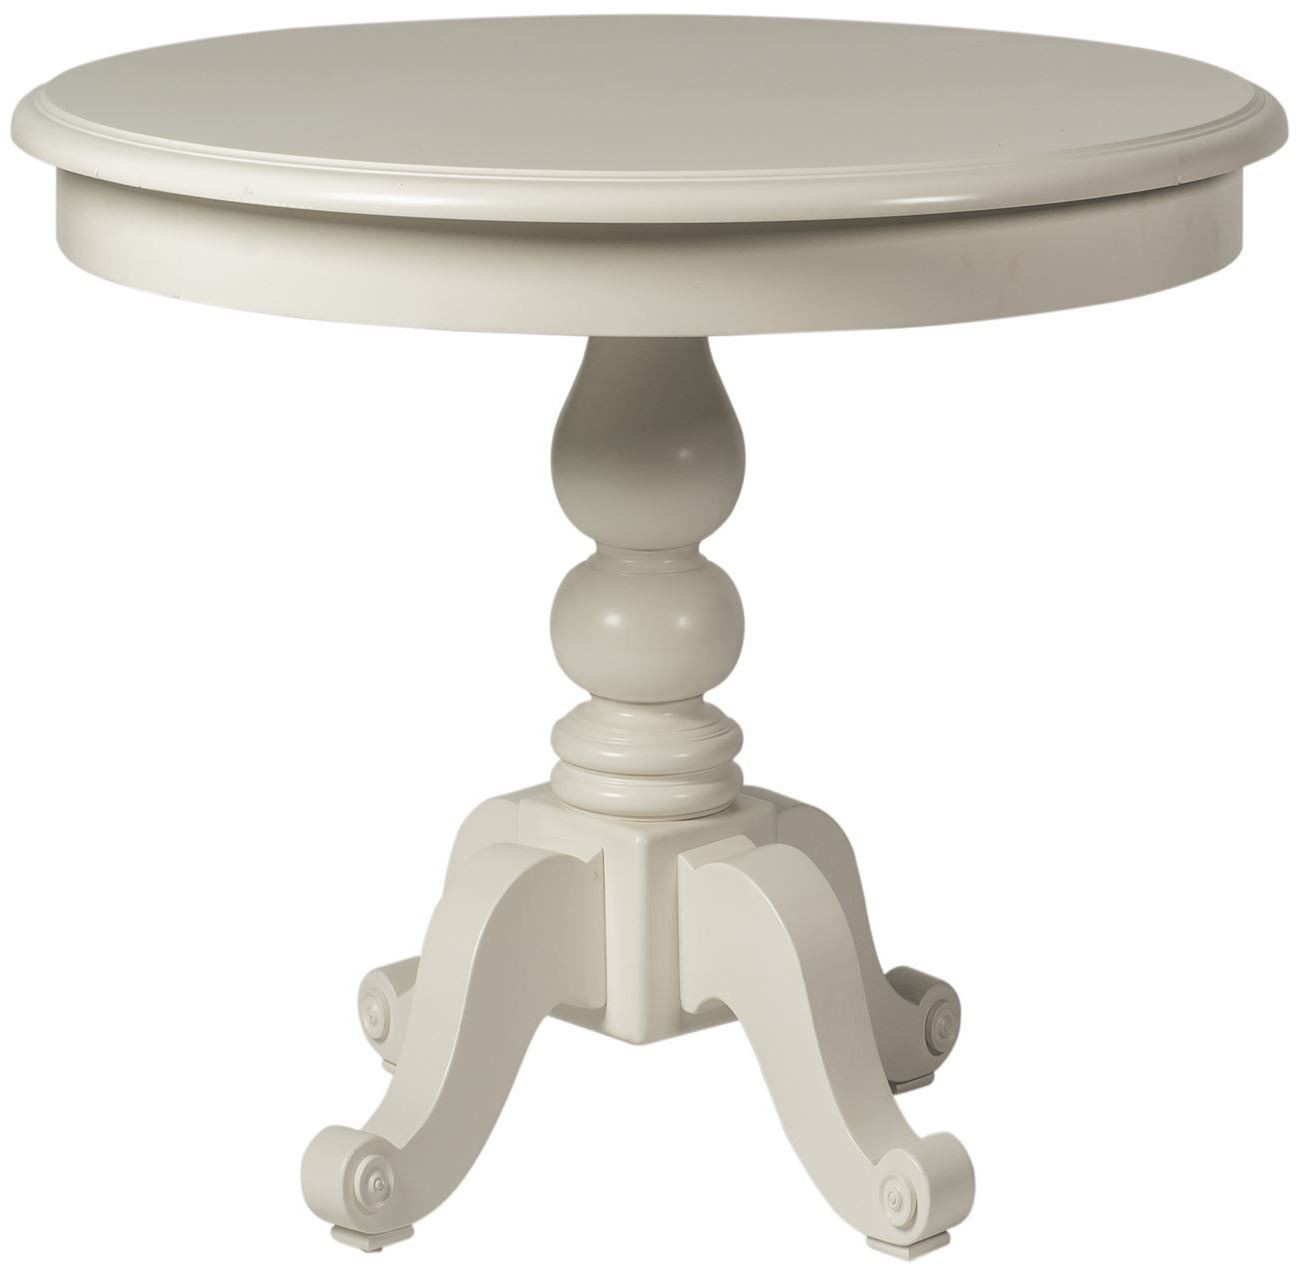 Summer House Oyster White Oyster White Round Pedestal Dining Table